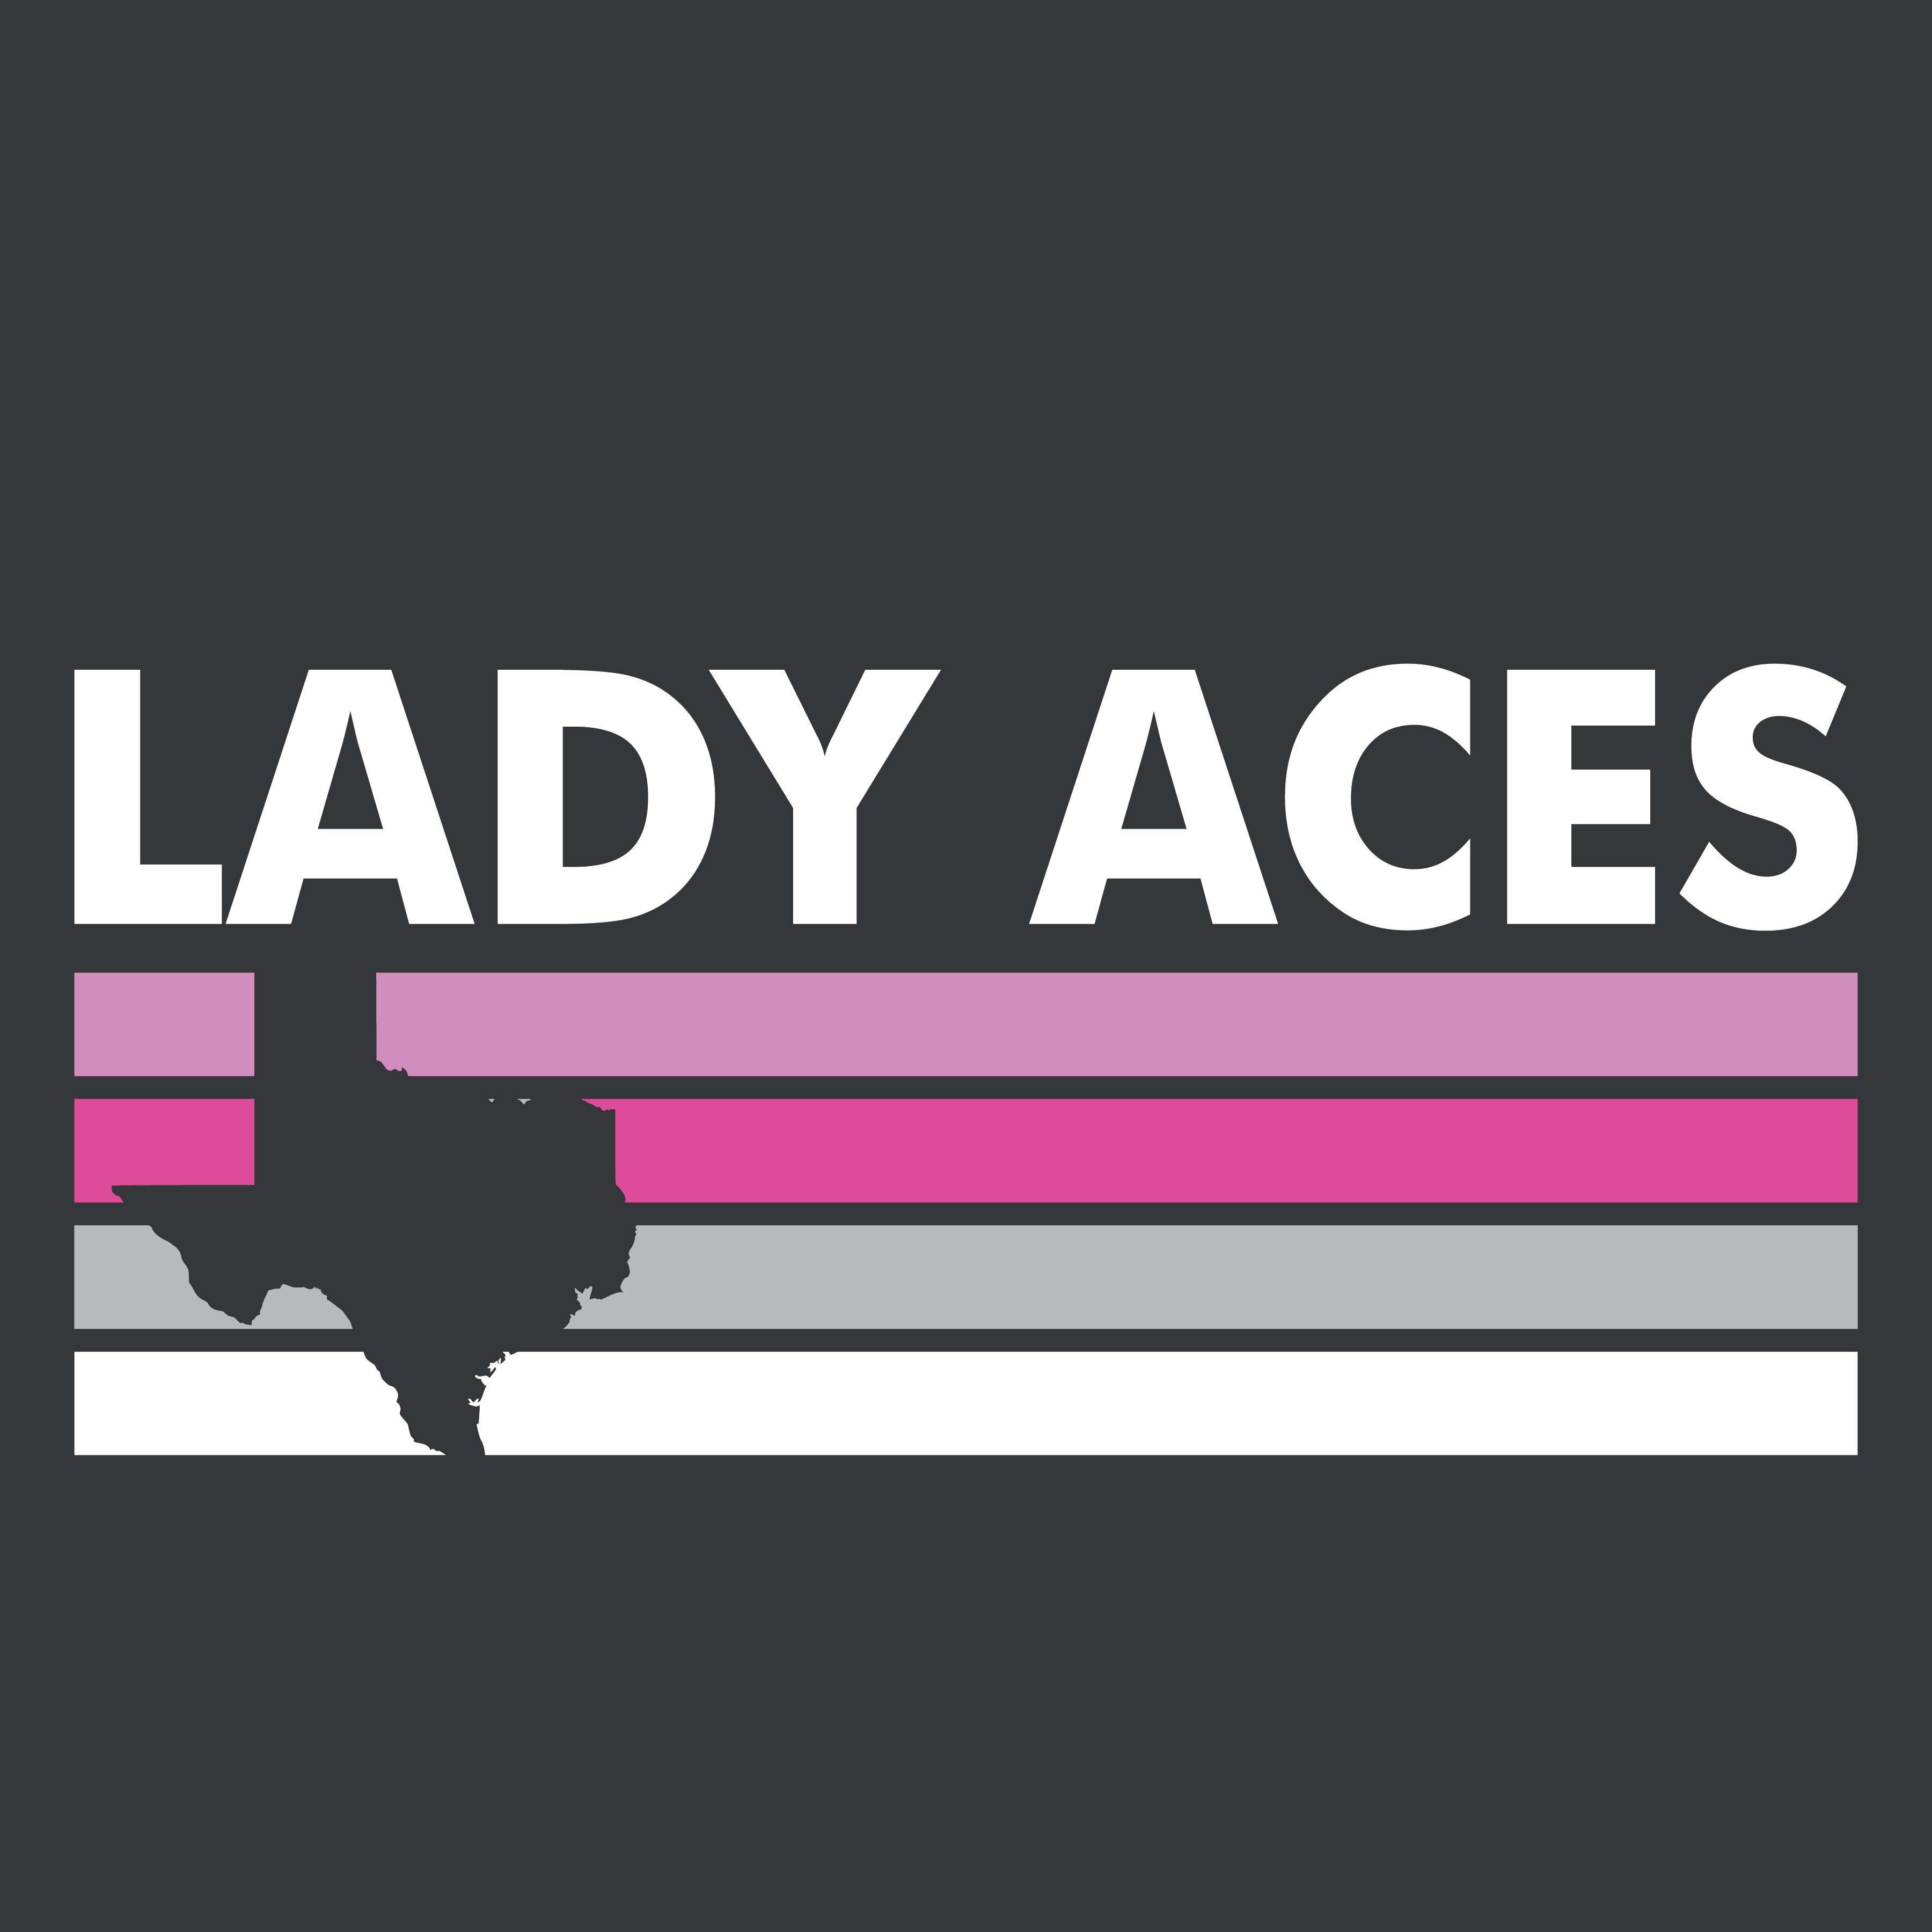 lady aces stripes